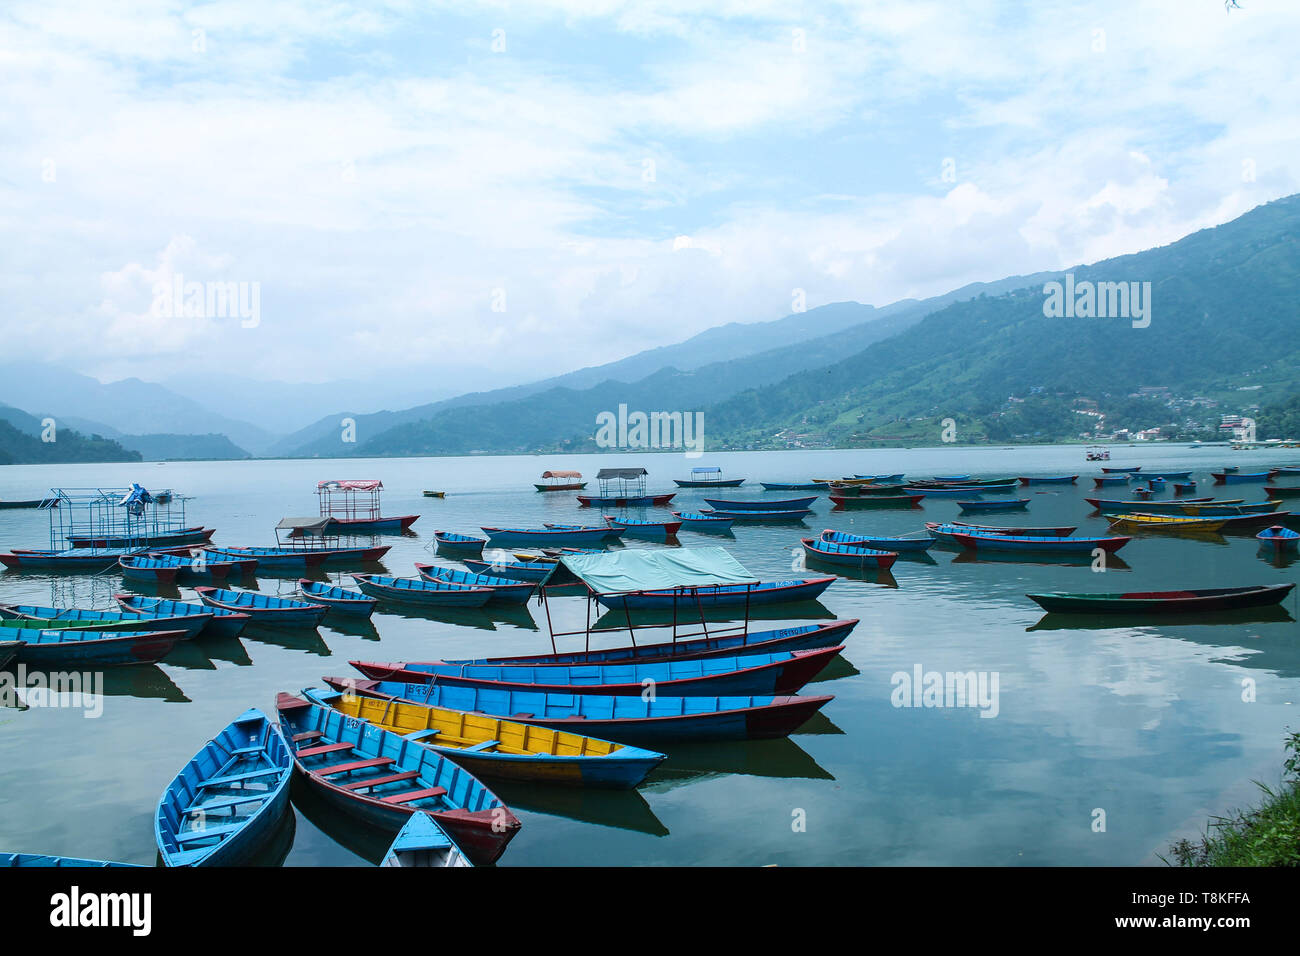 Colorful Boats On Beautiful phewa Lake,Pokhara, Nepal - Stock Image